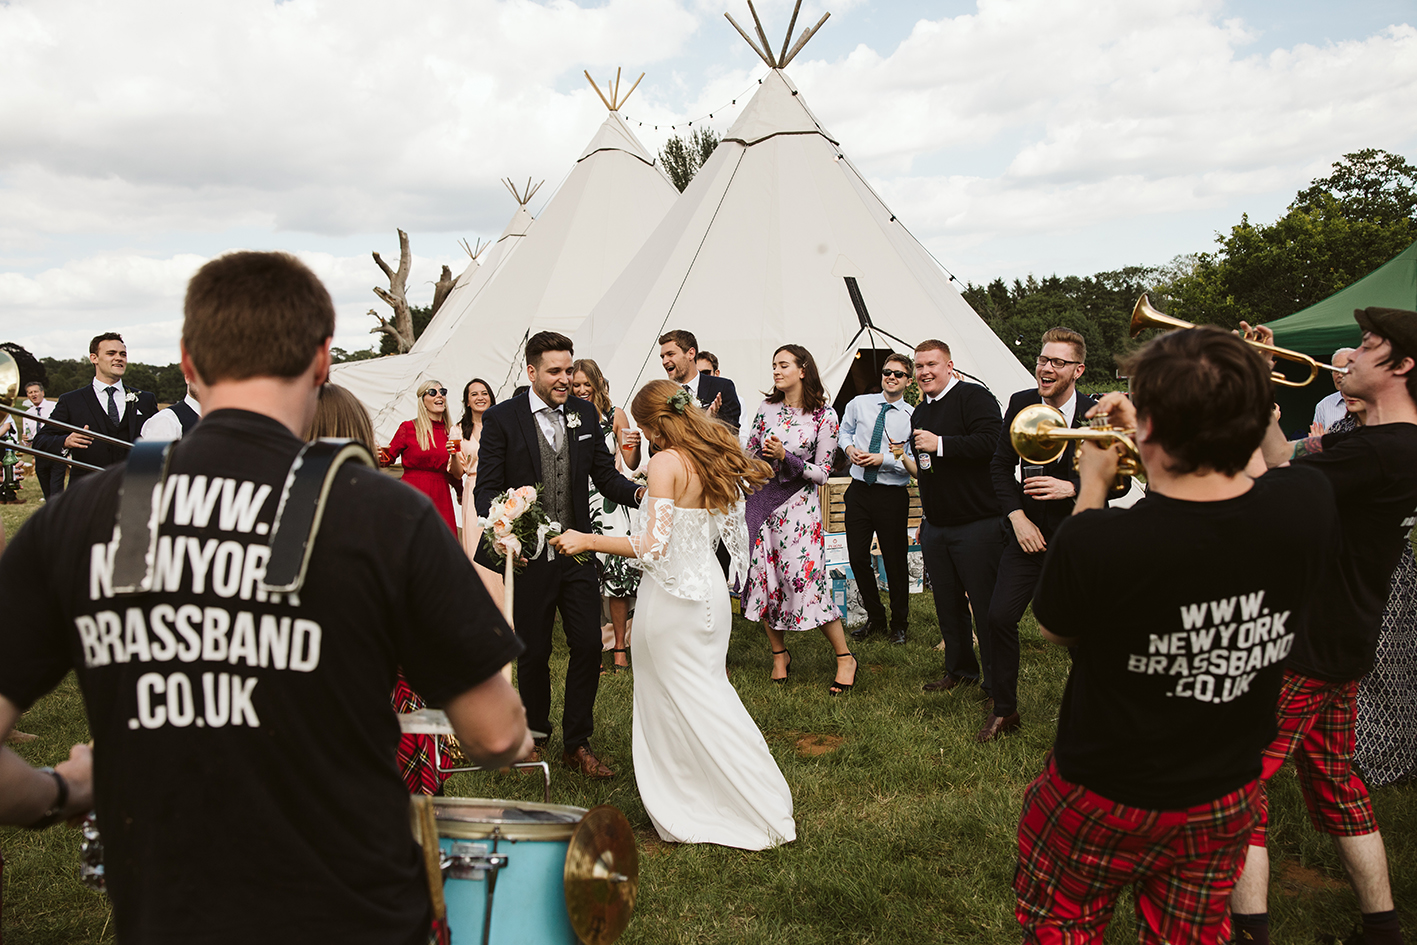 newly wed couple dancing outside a tipi